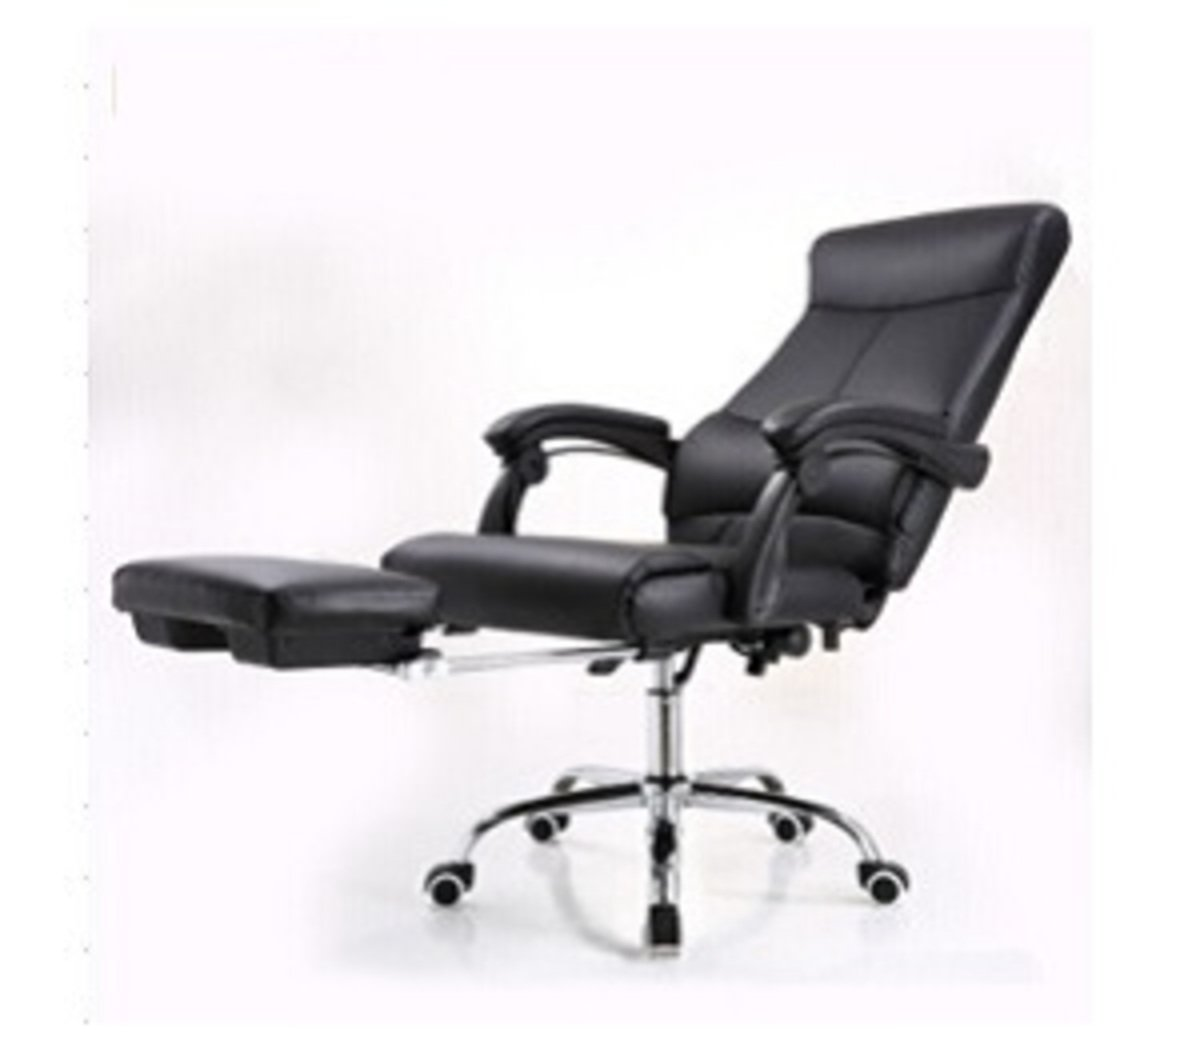 PU Leather Chair with Footrest(Black)